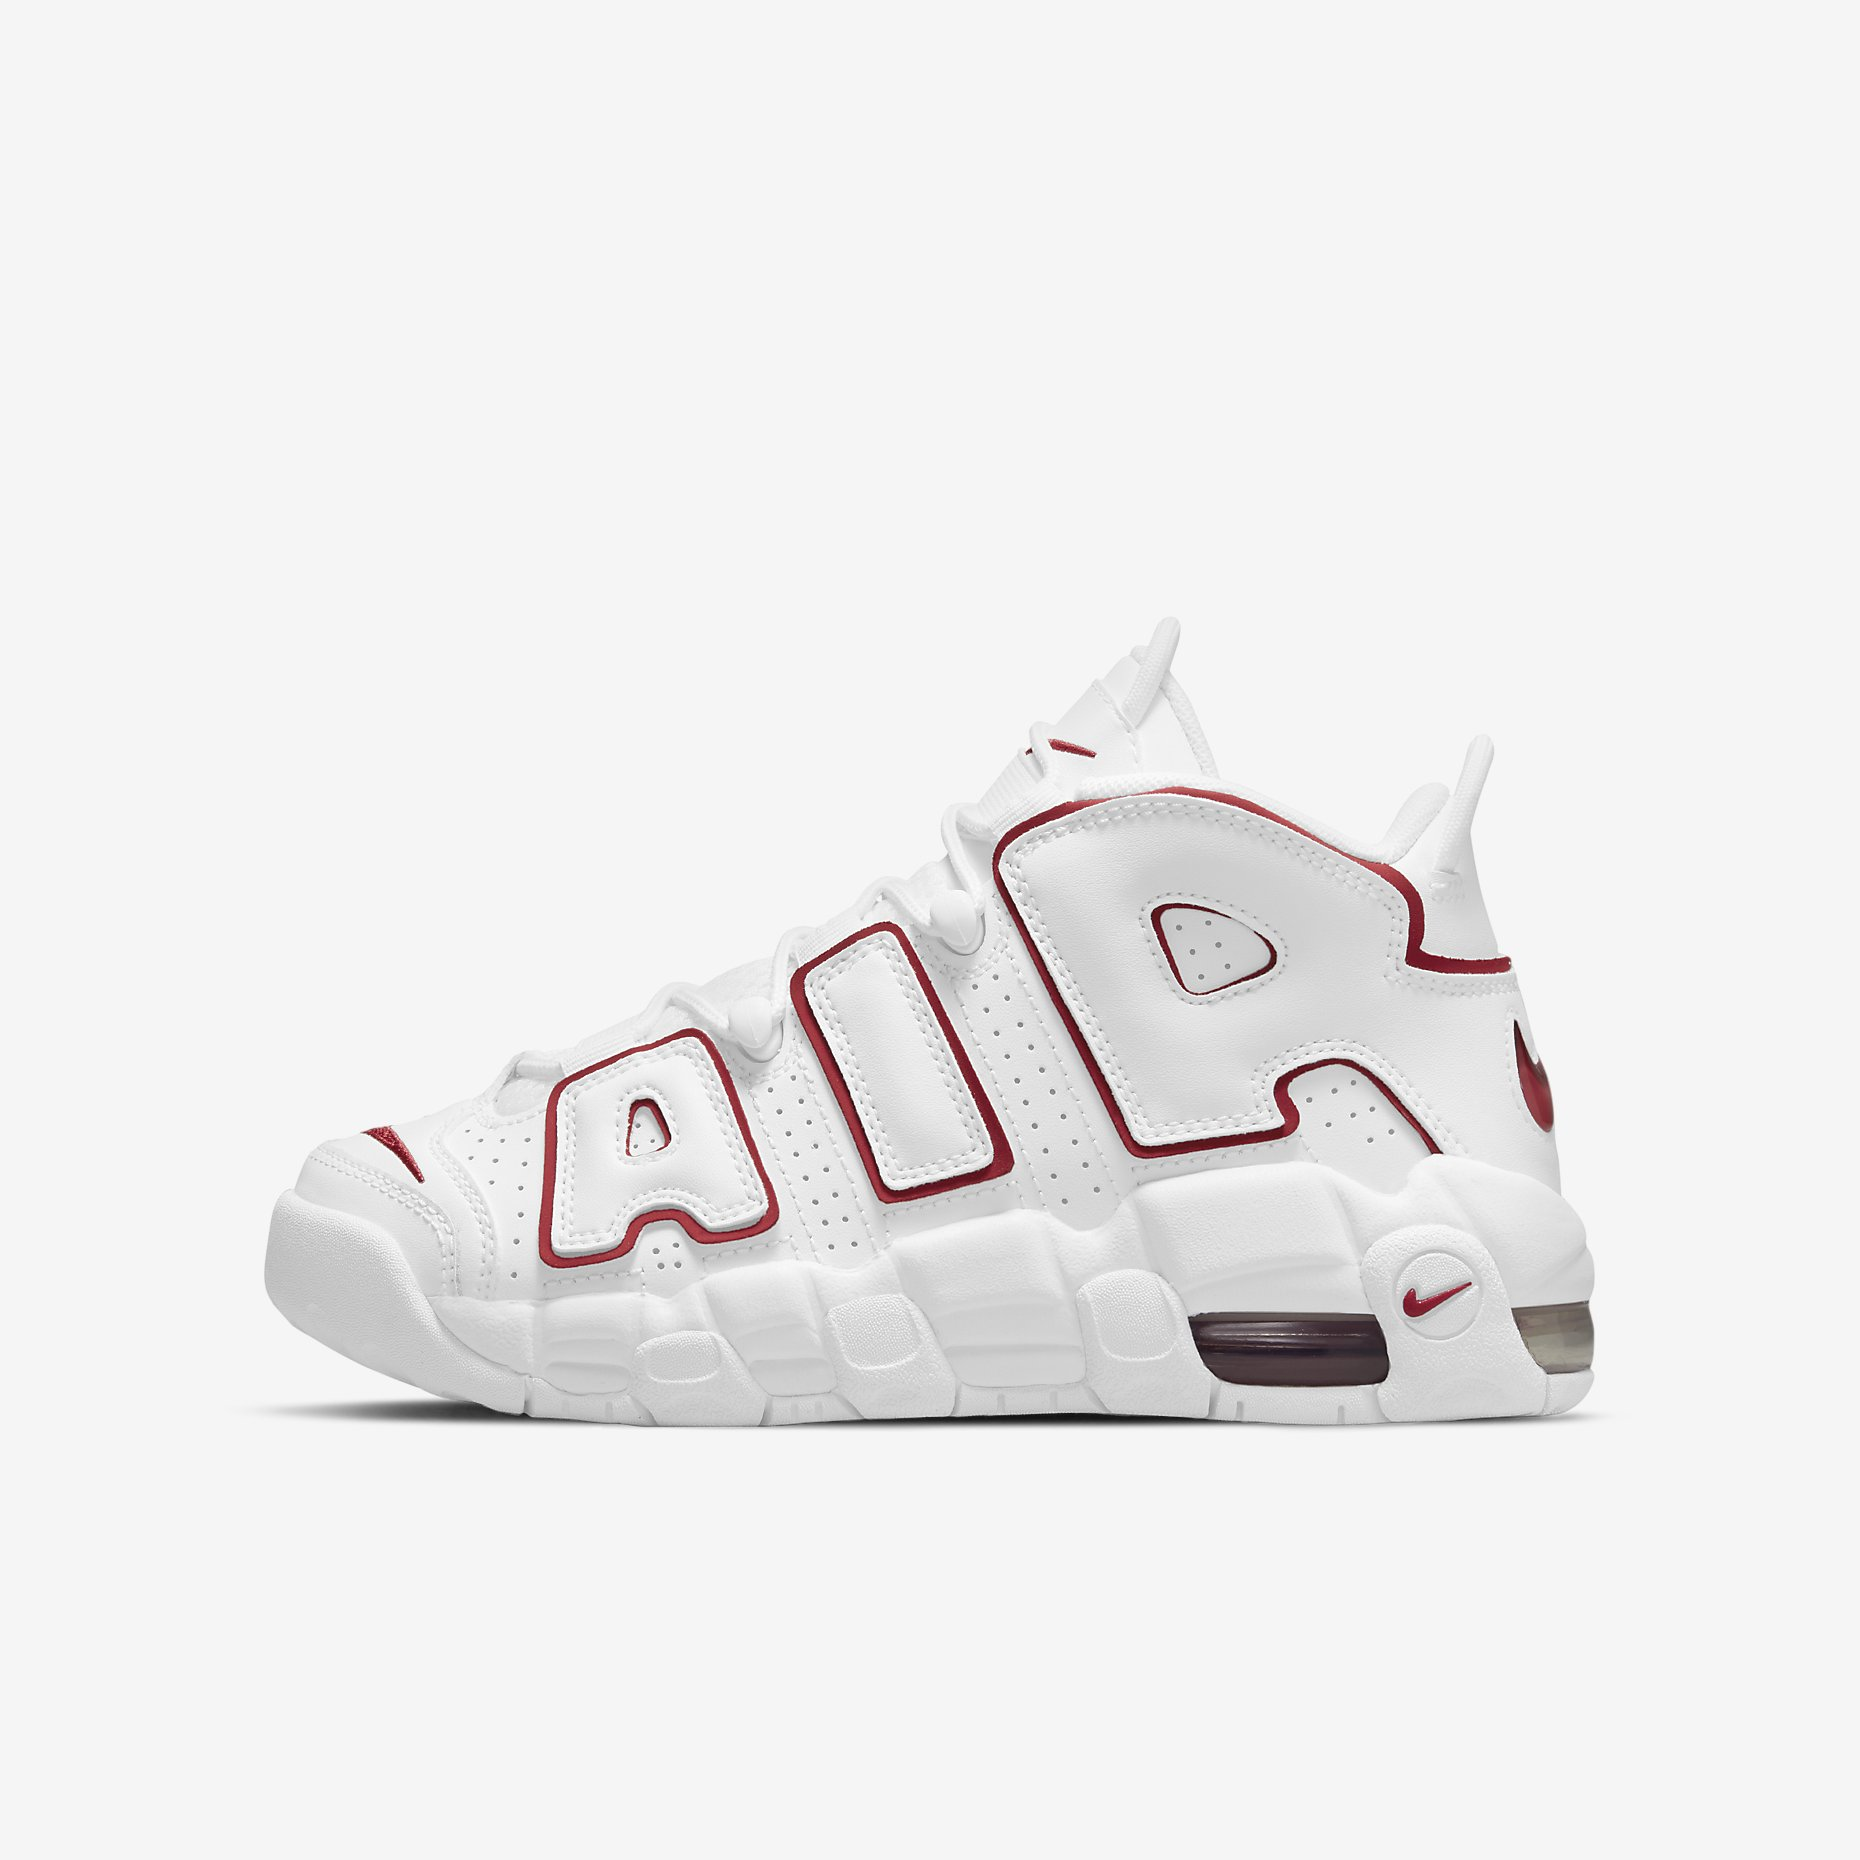 Nike Air More Uptempo GS 'White/Varsity Red'